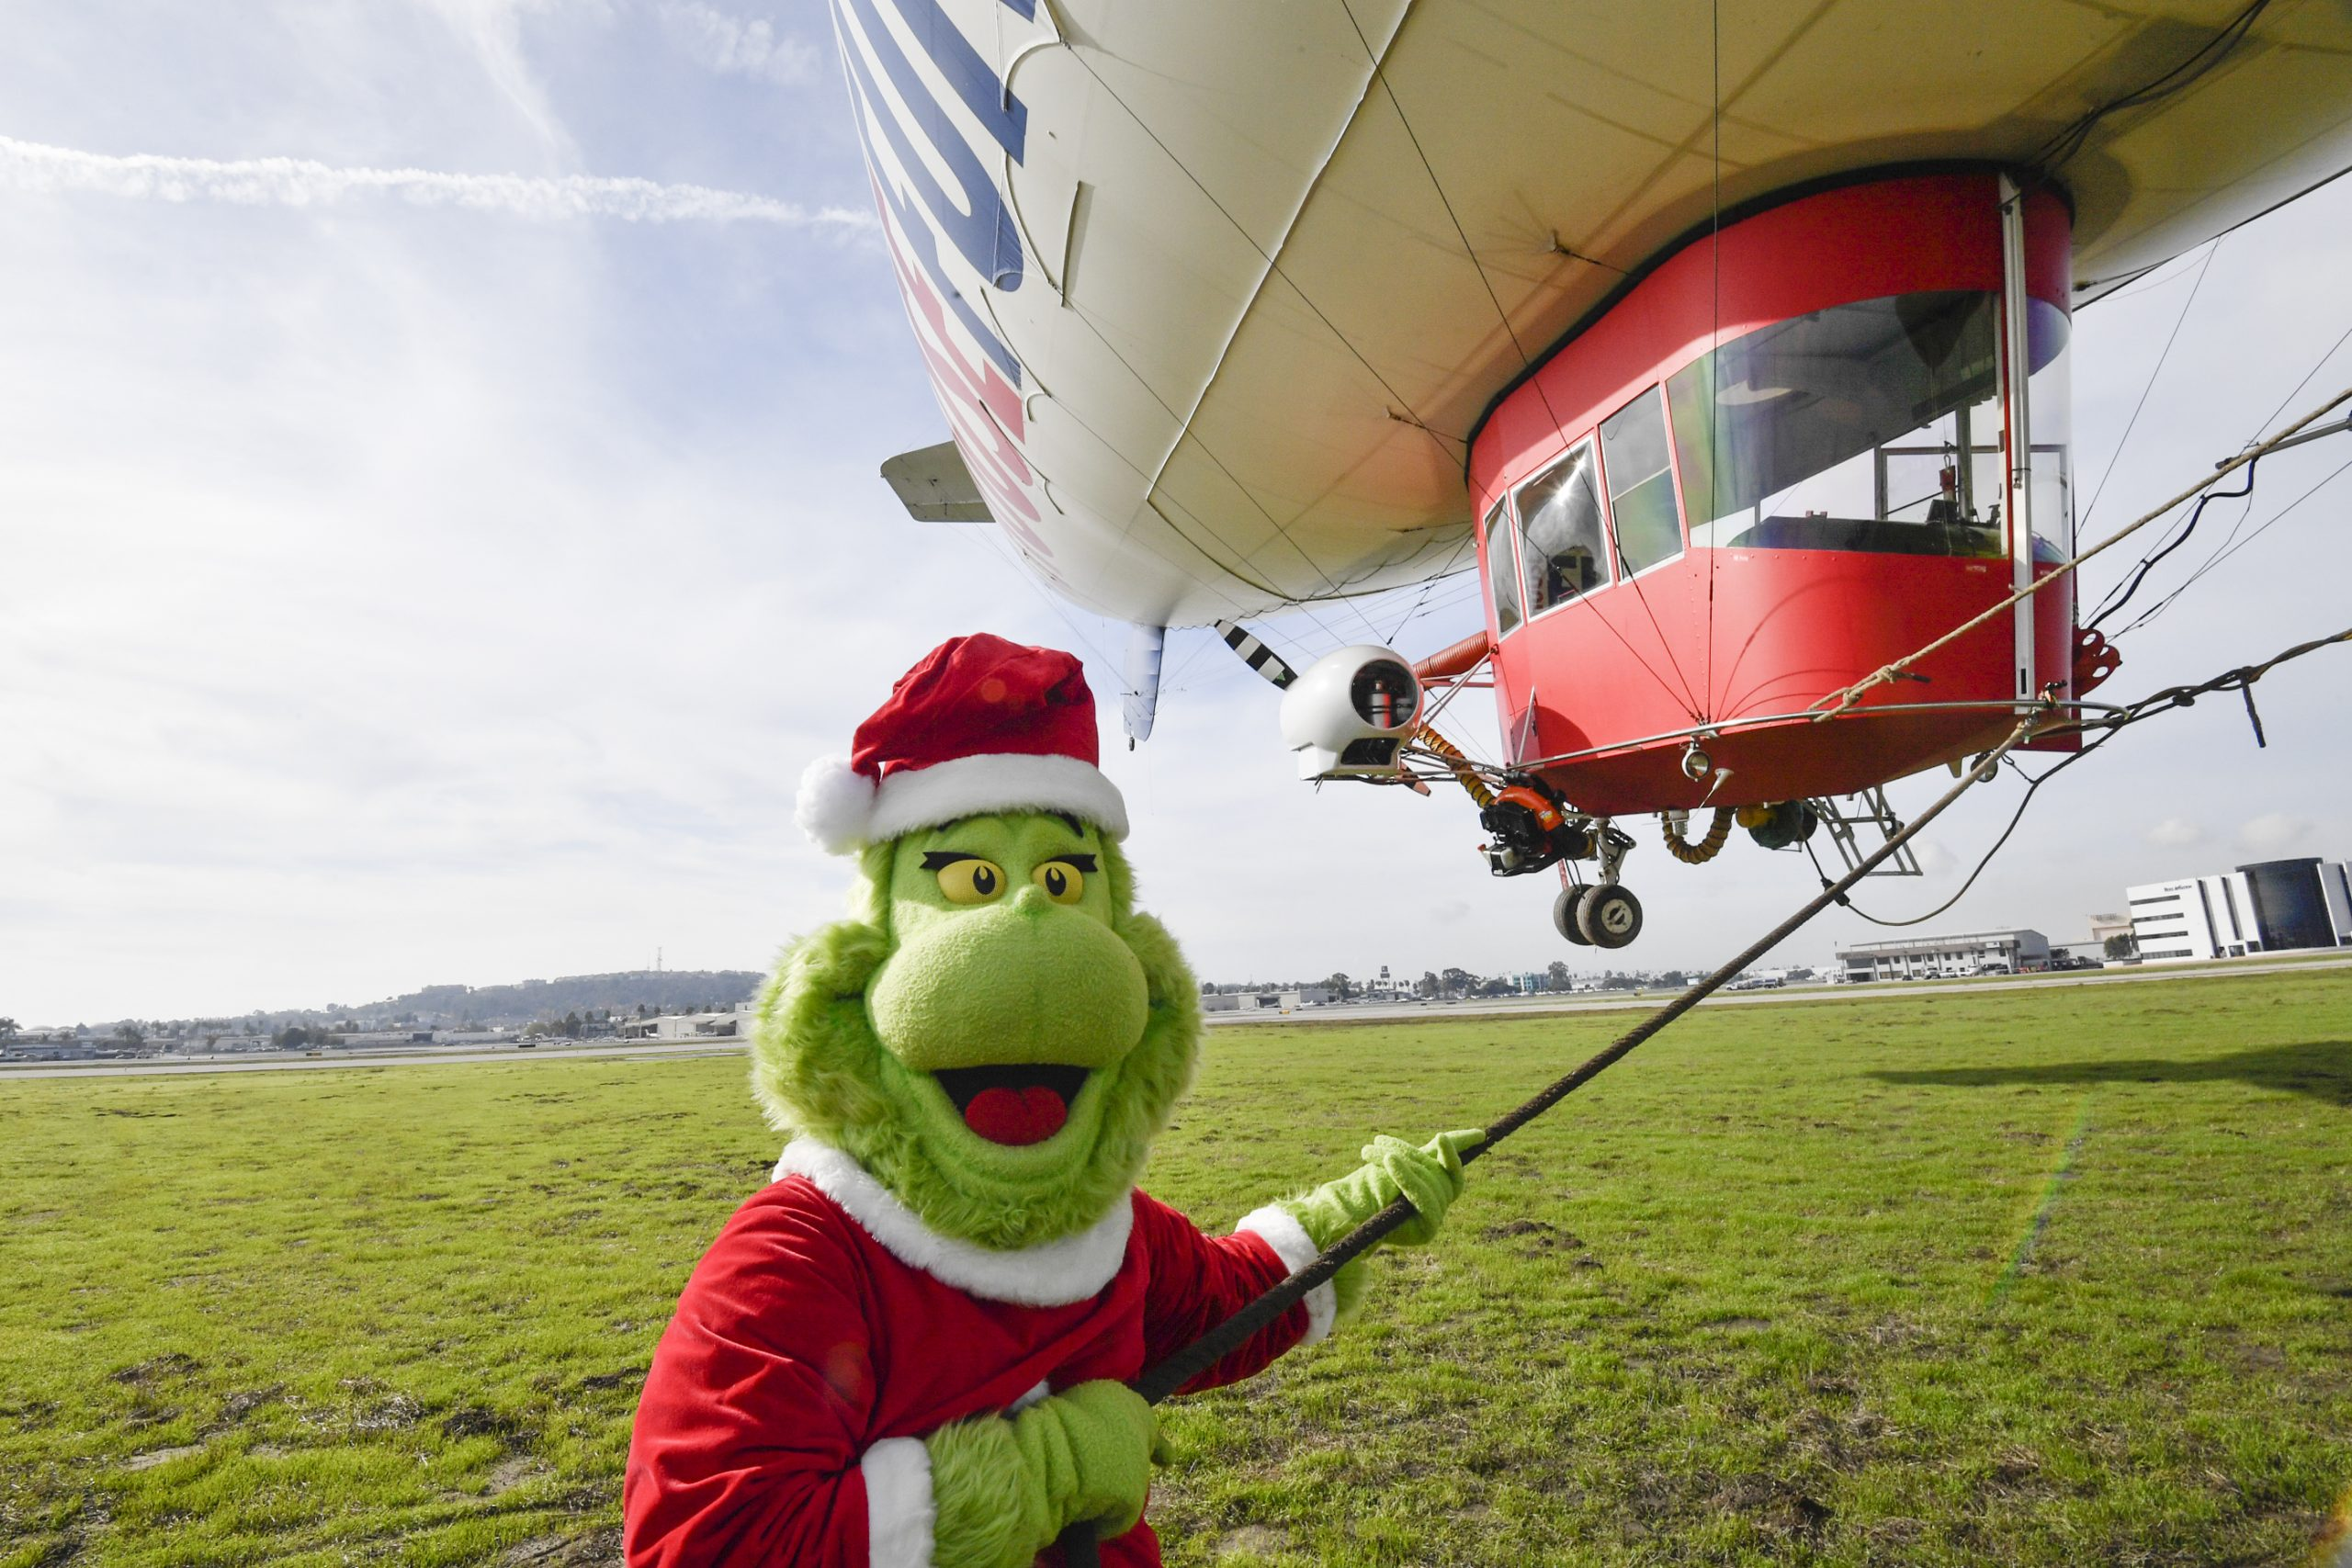 How the Grinch Stole the Carnival AirShip! Blimp Concludes California Tour, Makes Way to Miami for The Big Game